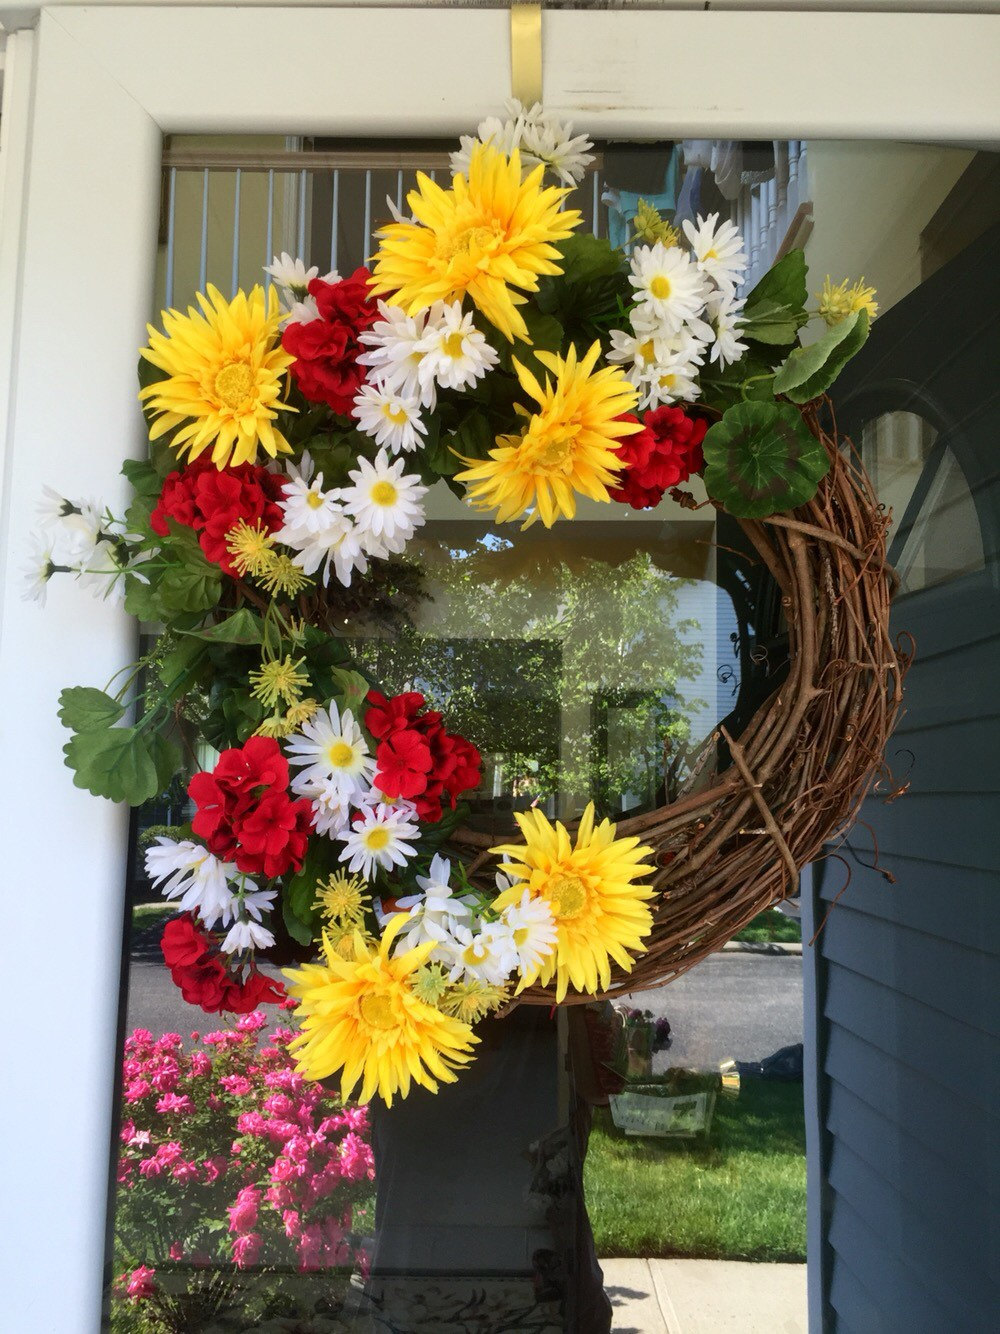 Summer Front Door Wreath: 18 Whimsy Handmade Summer Wreath Designs For A Fun Welcome